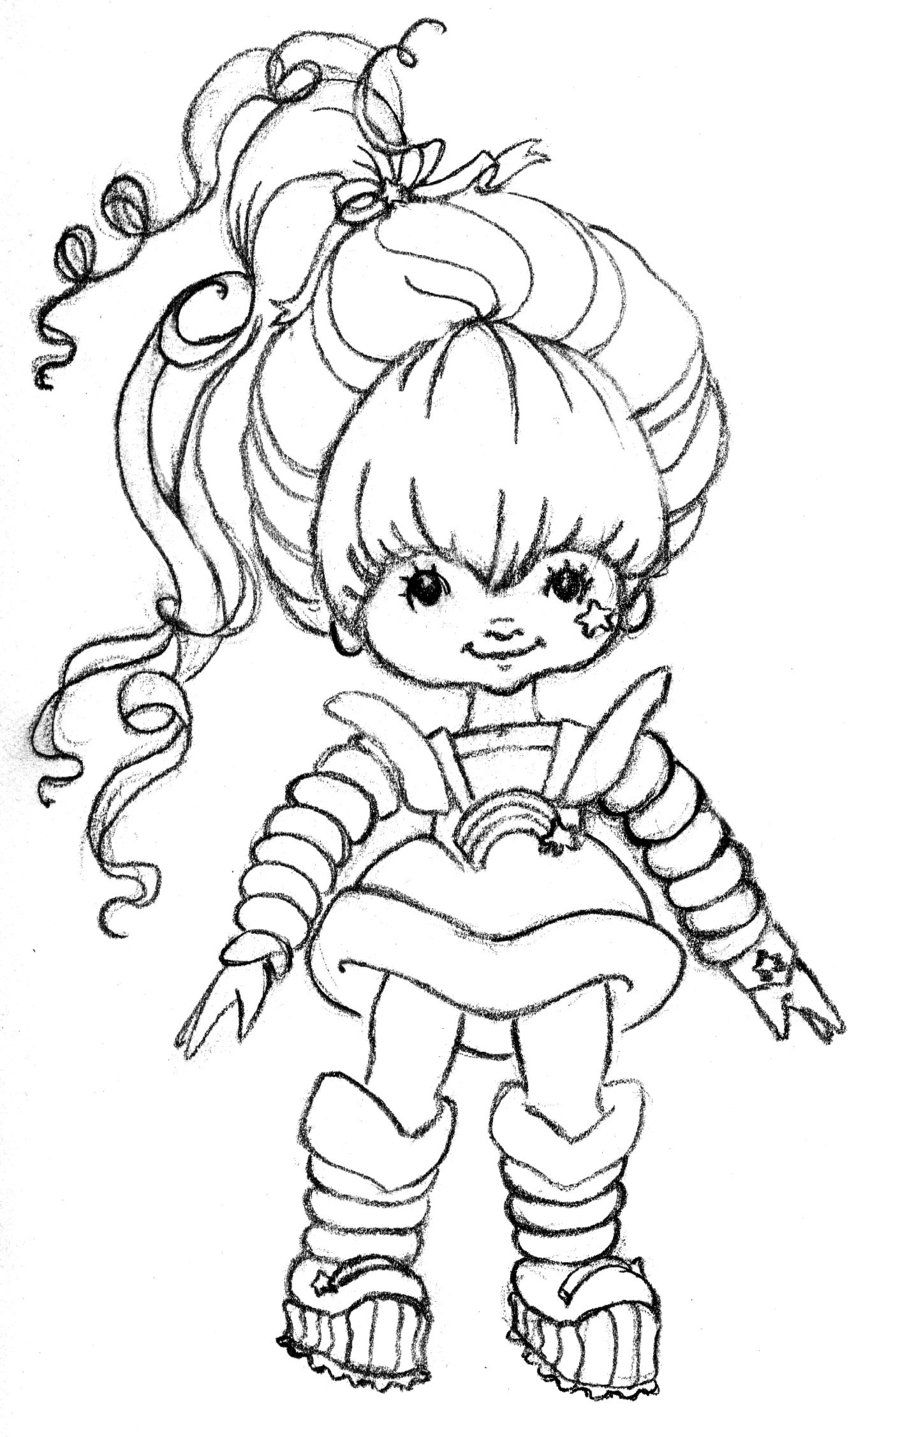 Rainbow colouring in pages - Images Of Rainbow Bright Coloring Pages Rainbow Brite Coloring Pages Coloring Pages Pictures